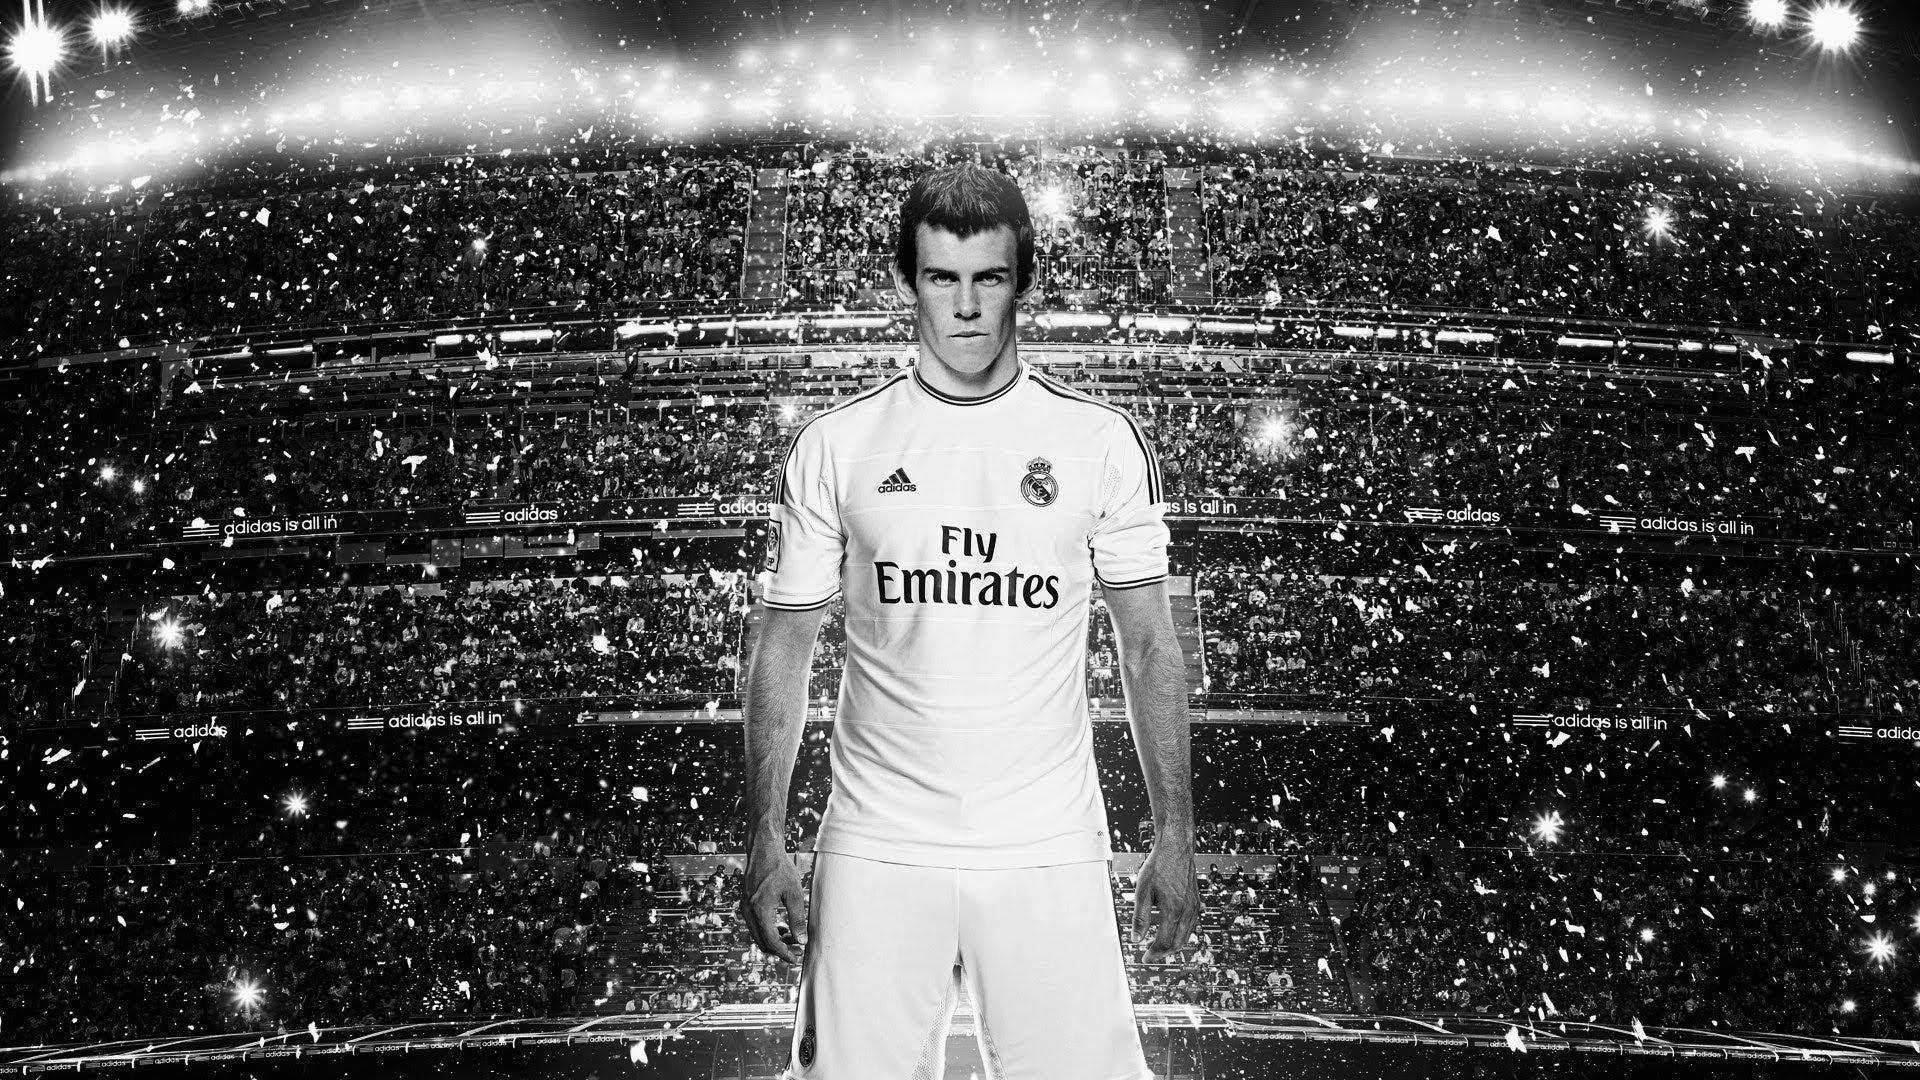 Gareth Bale HD Images 6 | Football Wallpapers | Pinterest | Hd ...